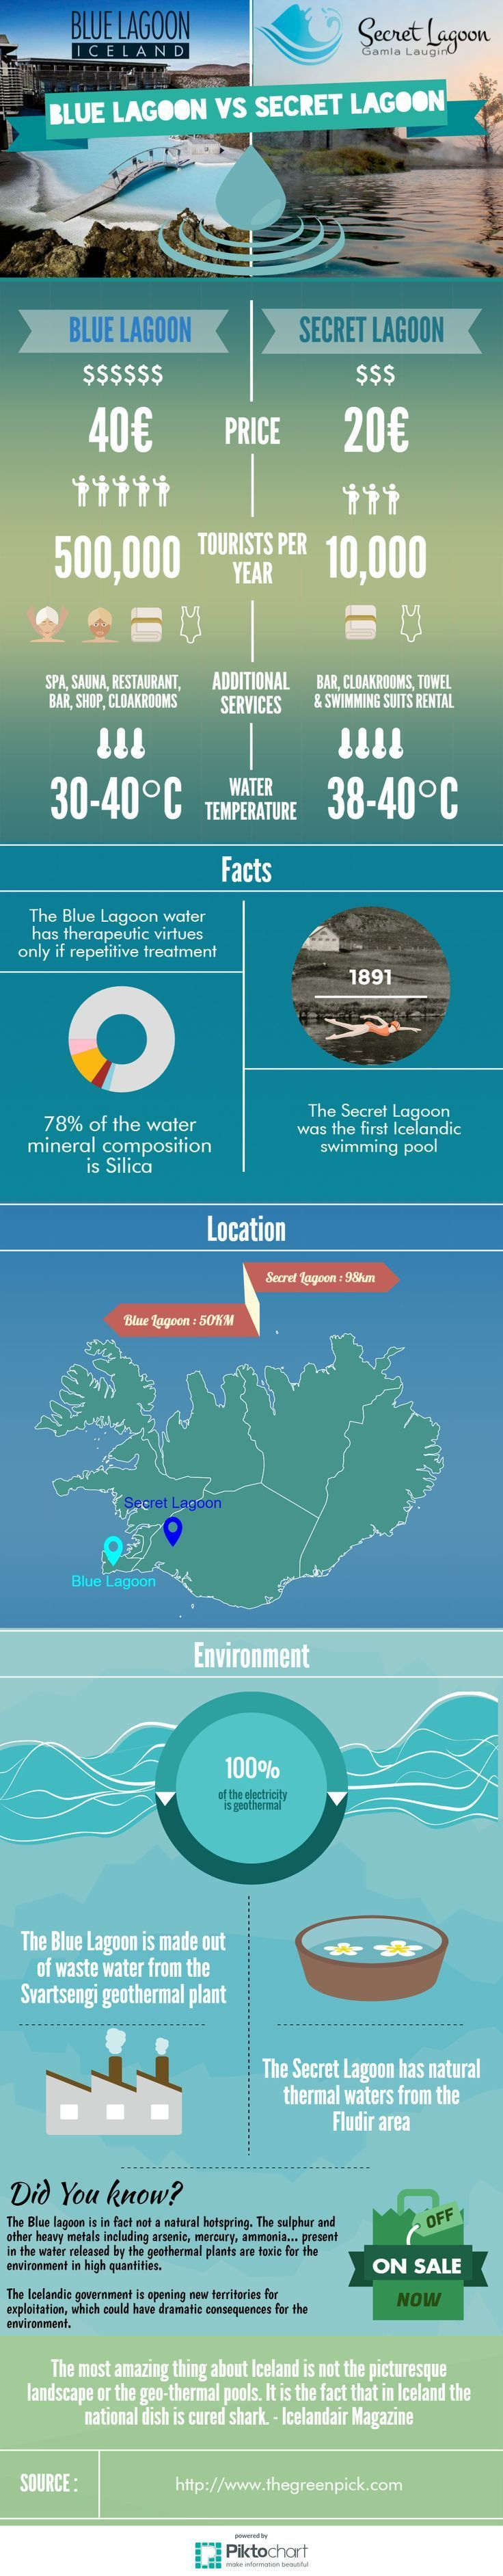 """Have you ever visited the Blue Lagoon in Iceland? Or planning to? Do you think it worth the price ? Here's an infographic to compare this """"wonder of nature"""" and another lagoon less famous the Secret Lagoon of Fludir. #iceland #bluelagoon #travel"""